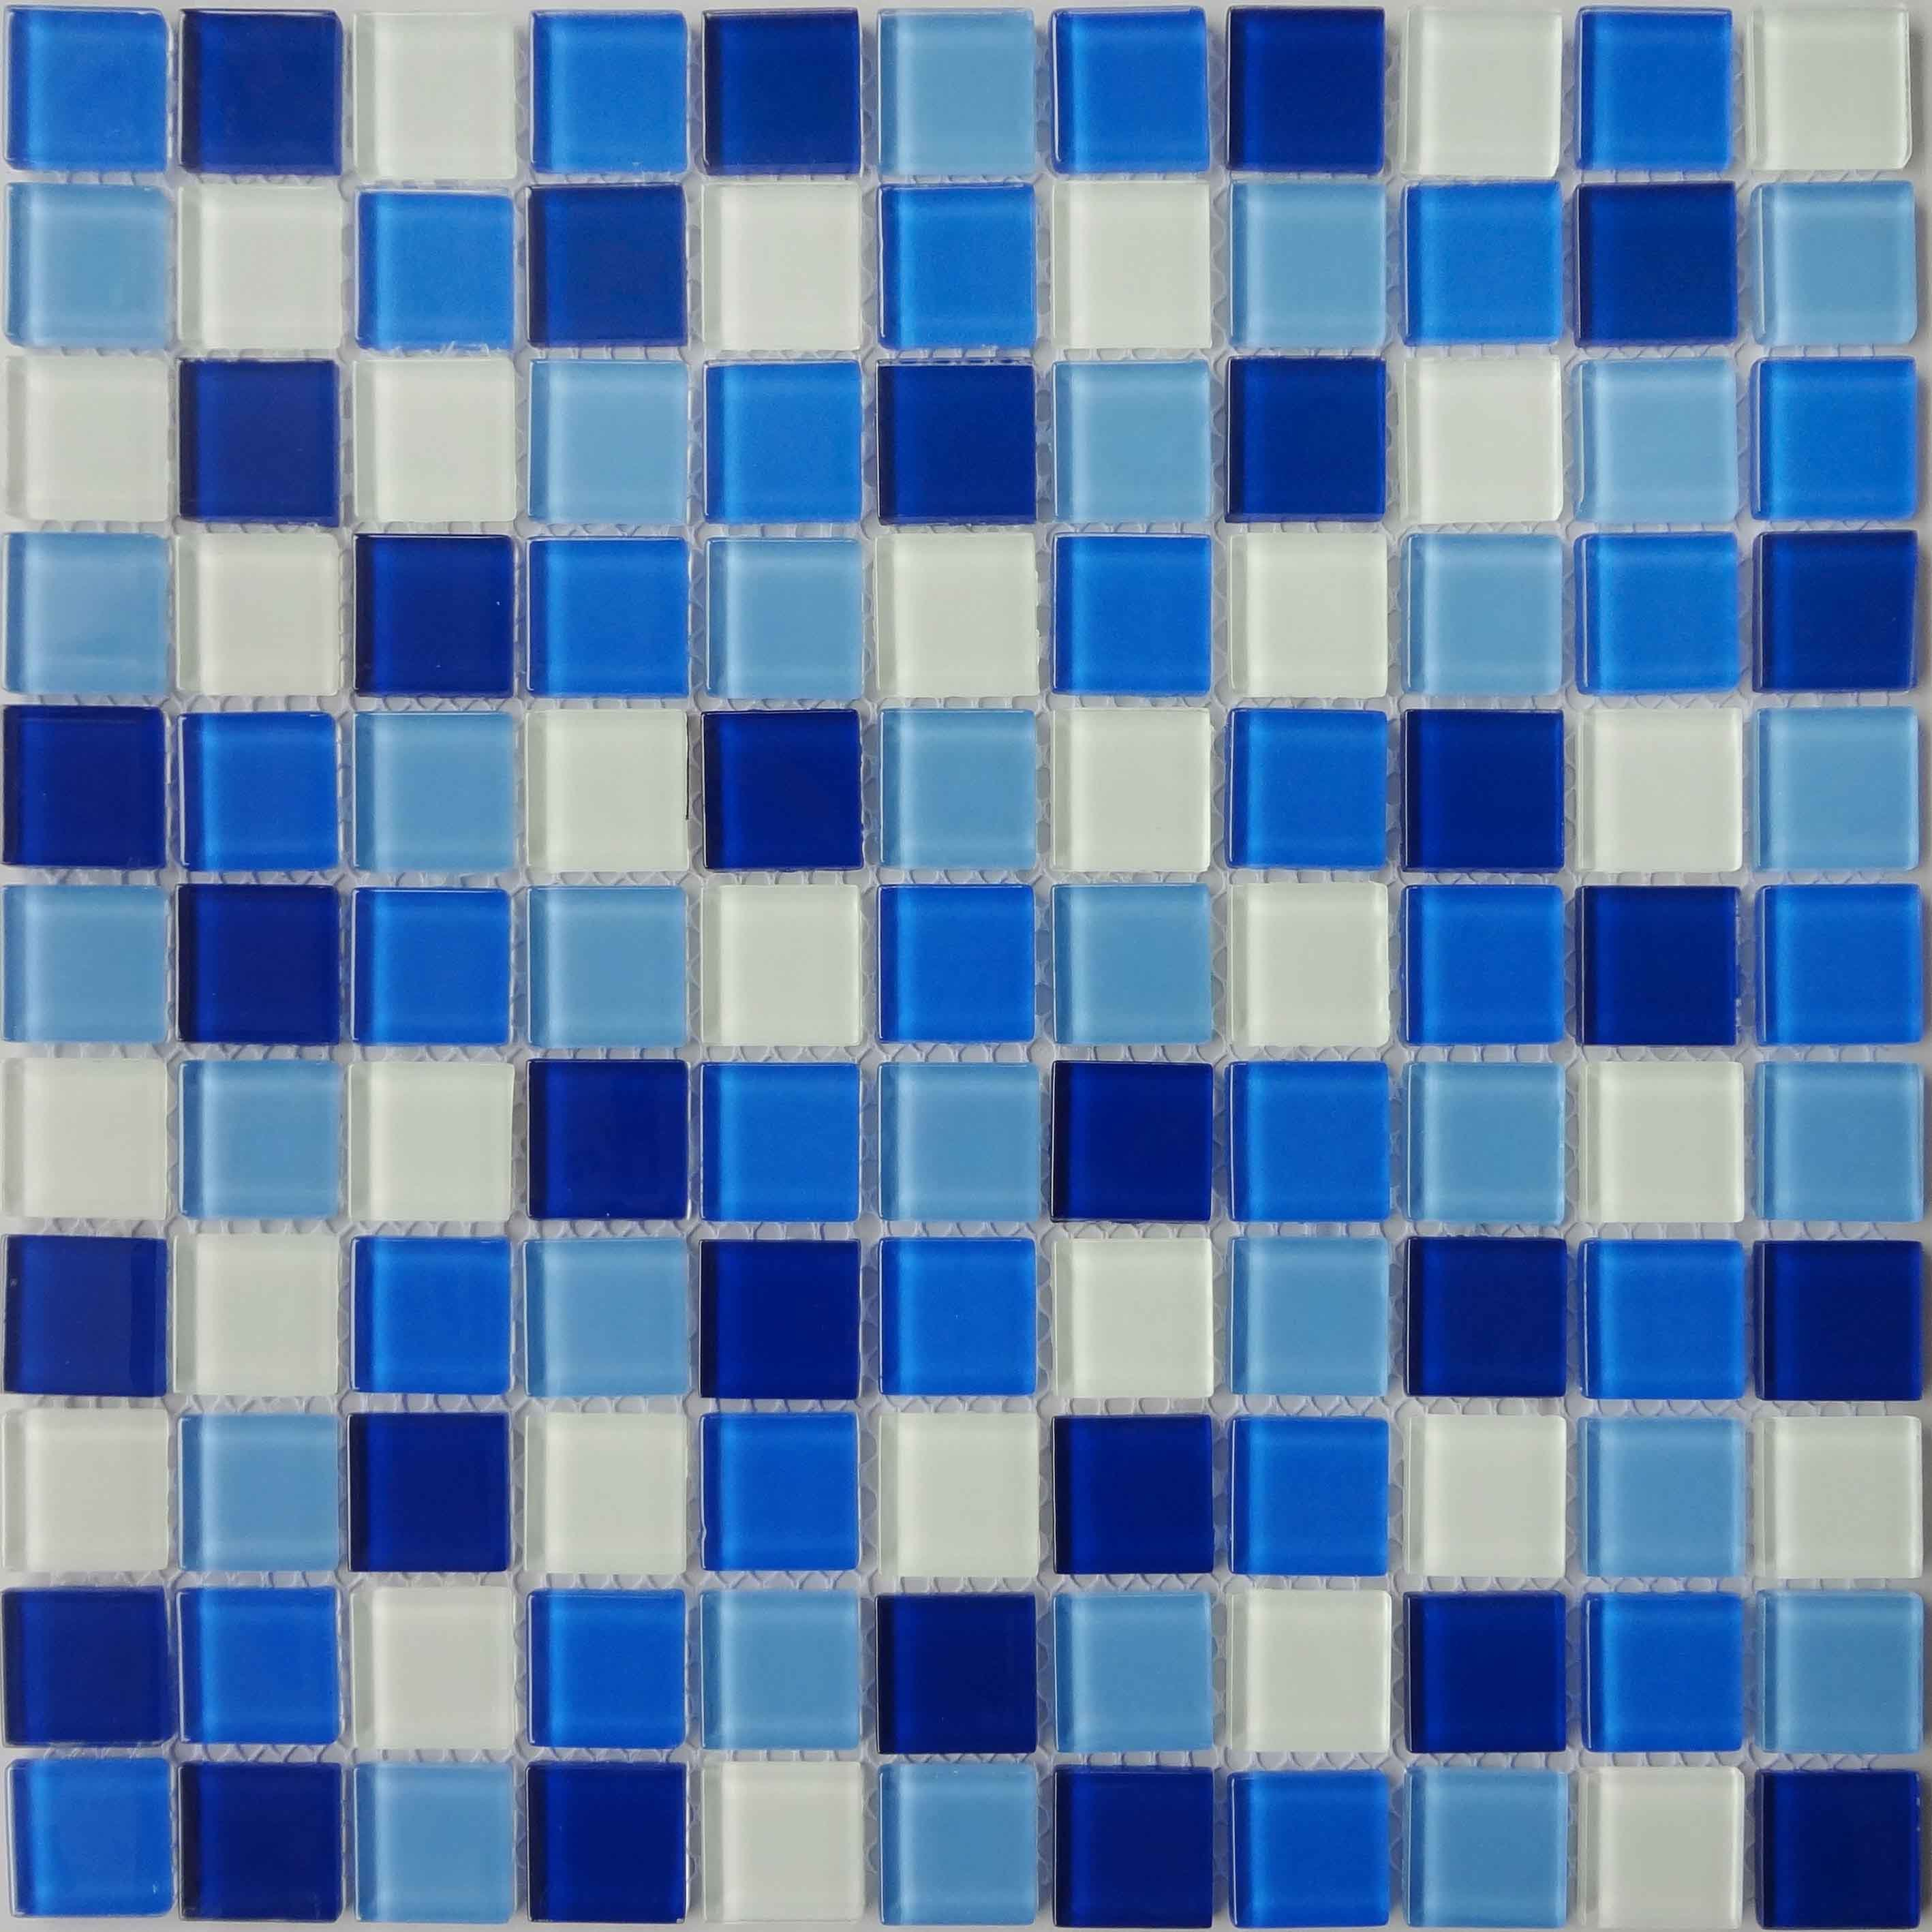 Decorative mosaic pool tiles pusat mosaic for Pool design mosaic tiles